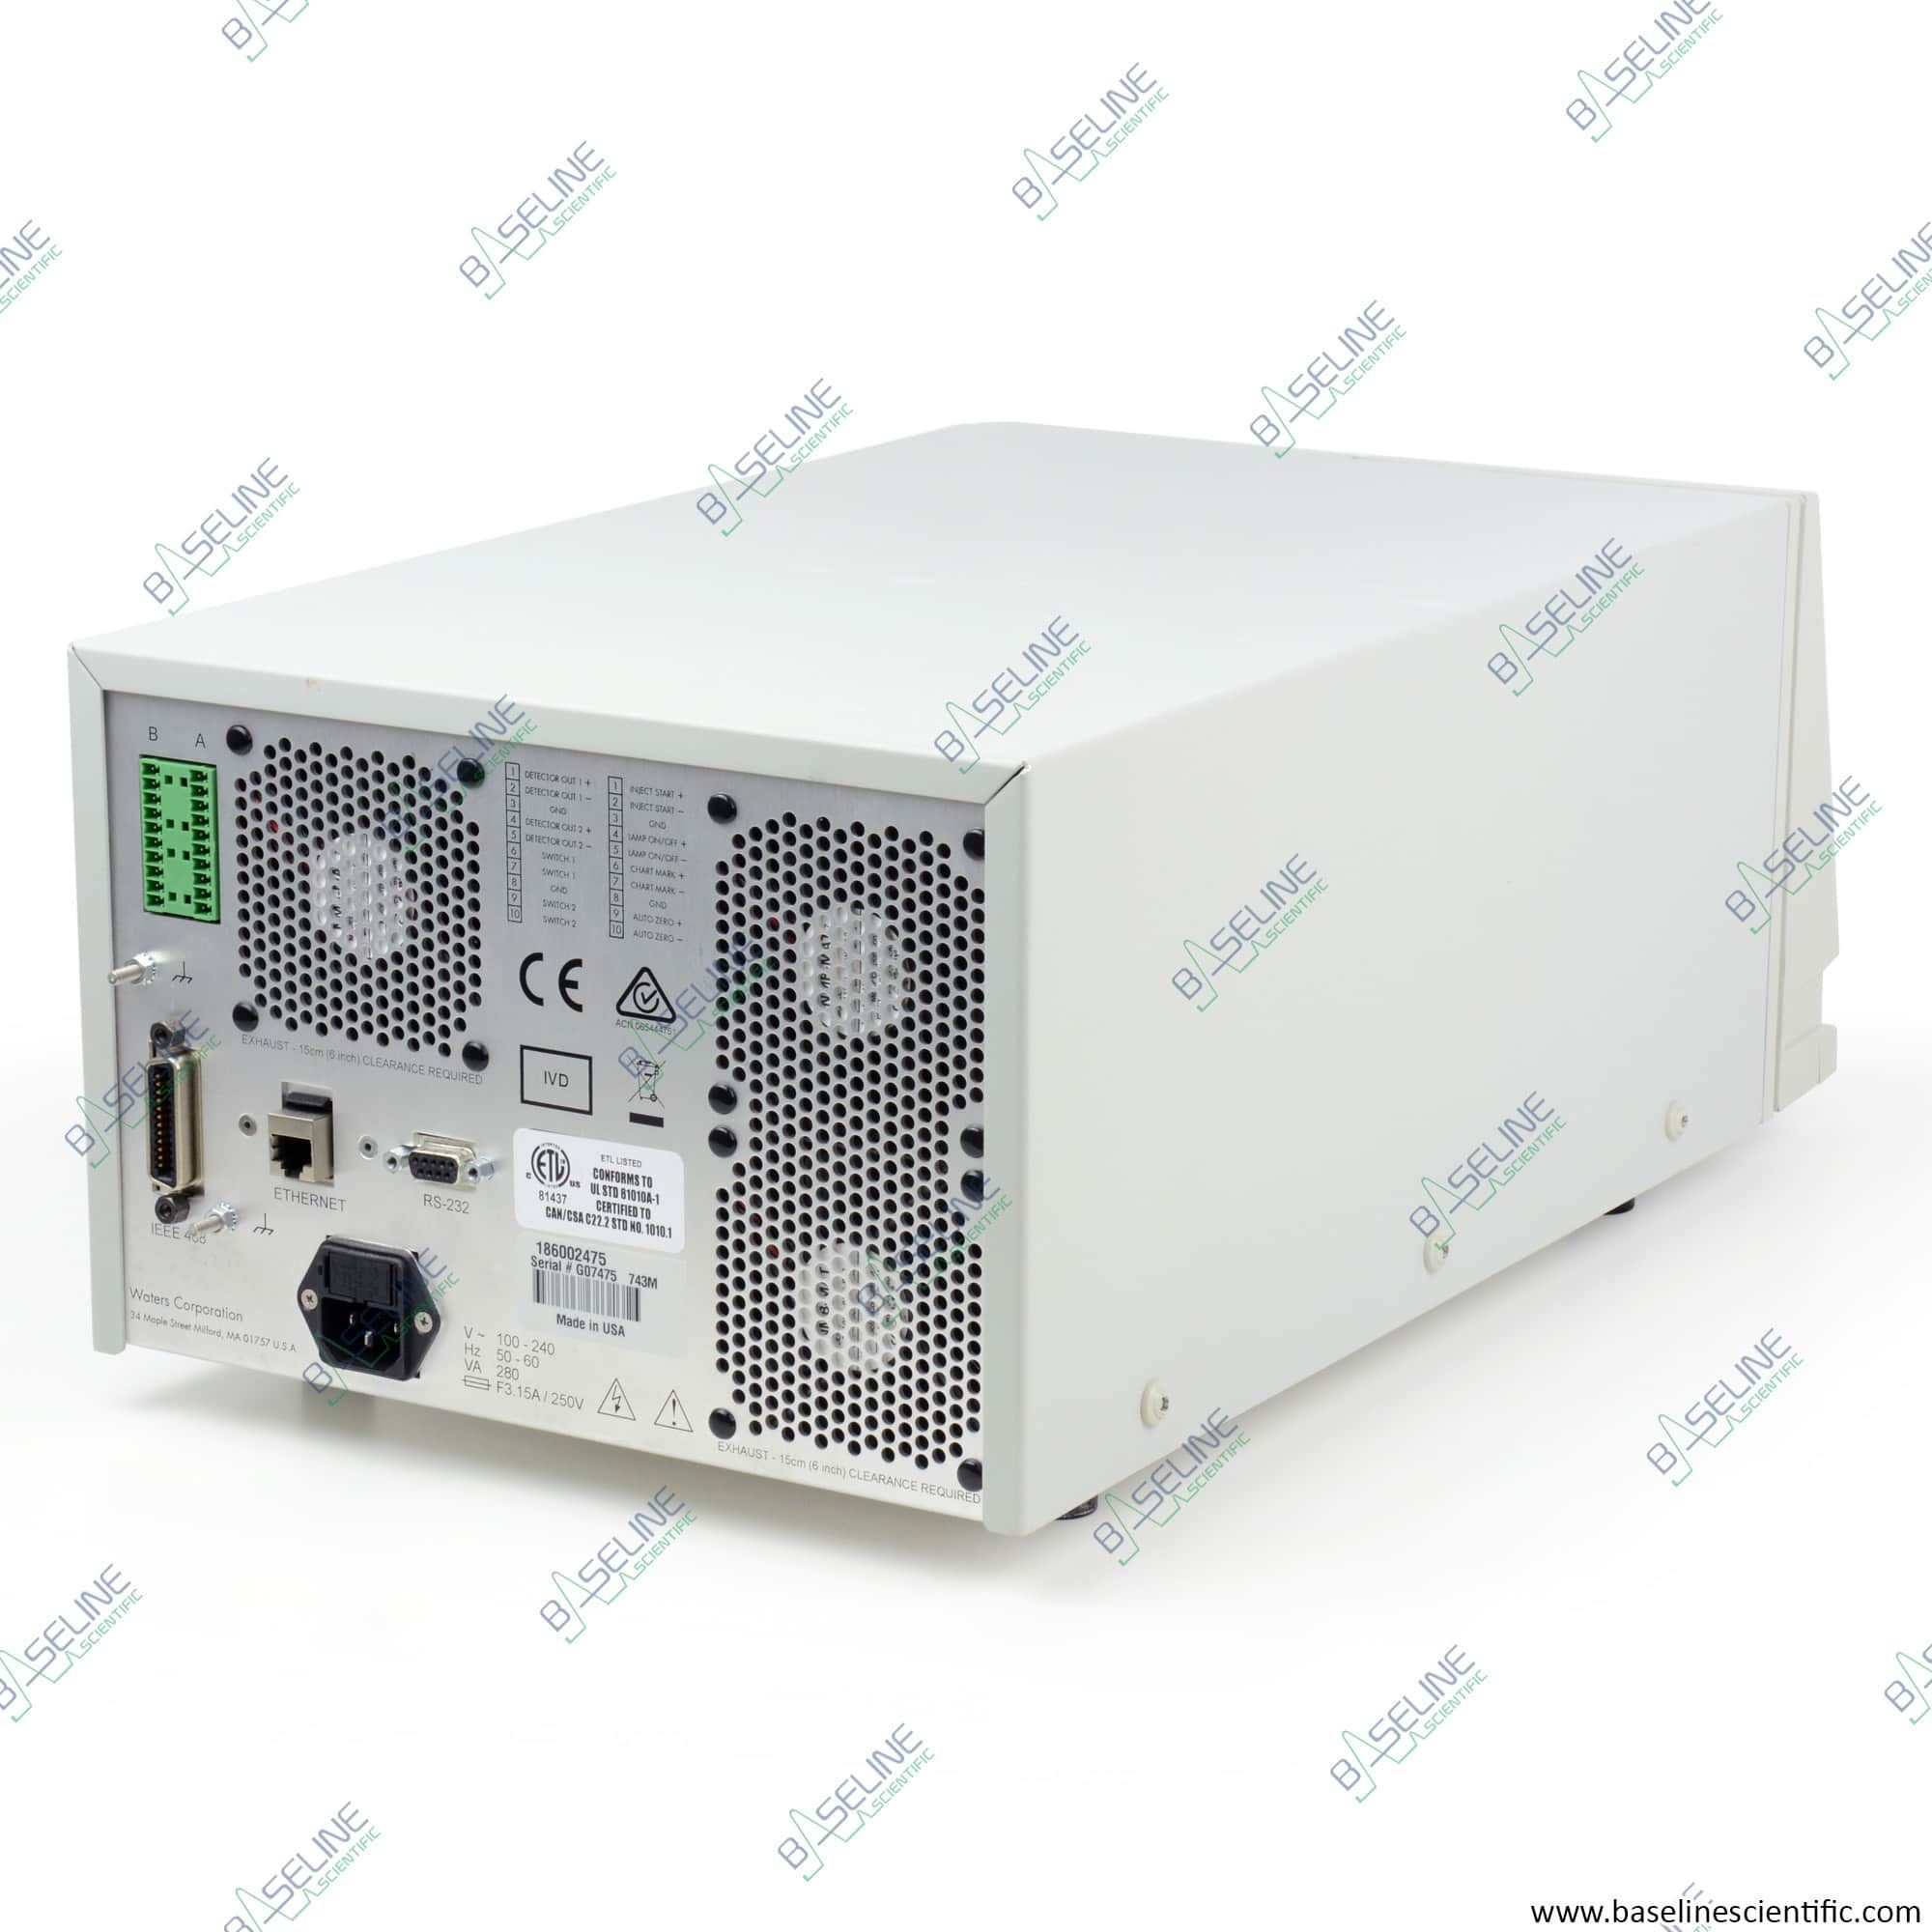 Refurbished Waters Alliance 2695 with 2475 FLD and ONE YEAR WARRANTY